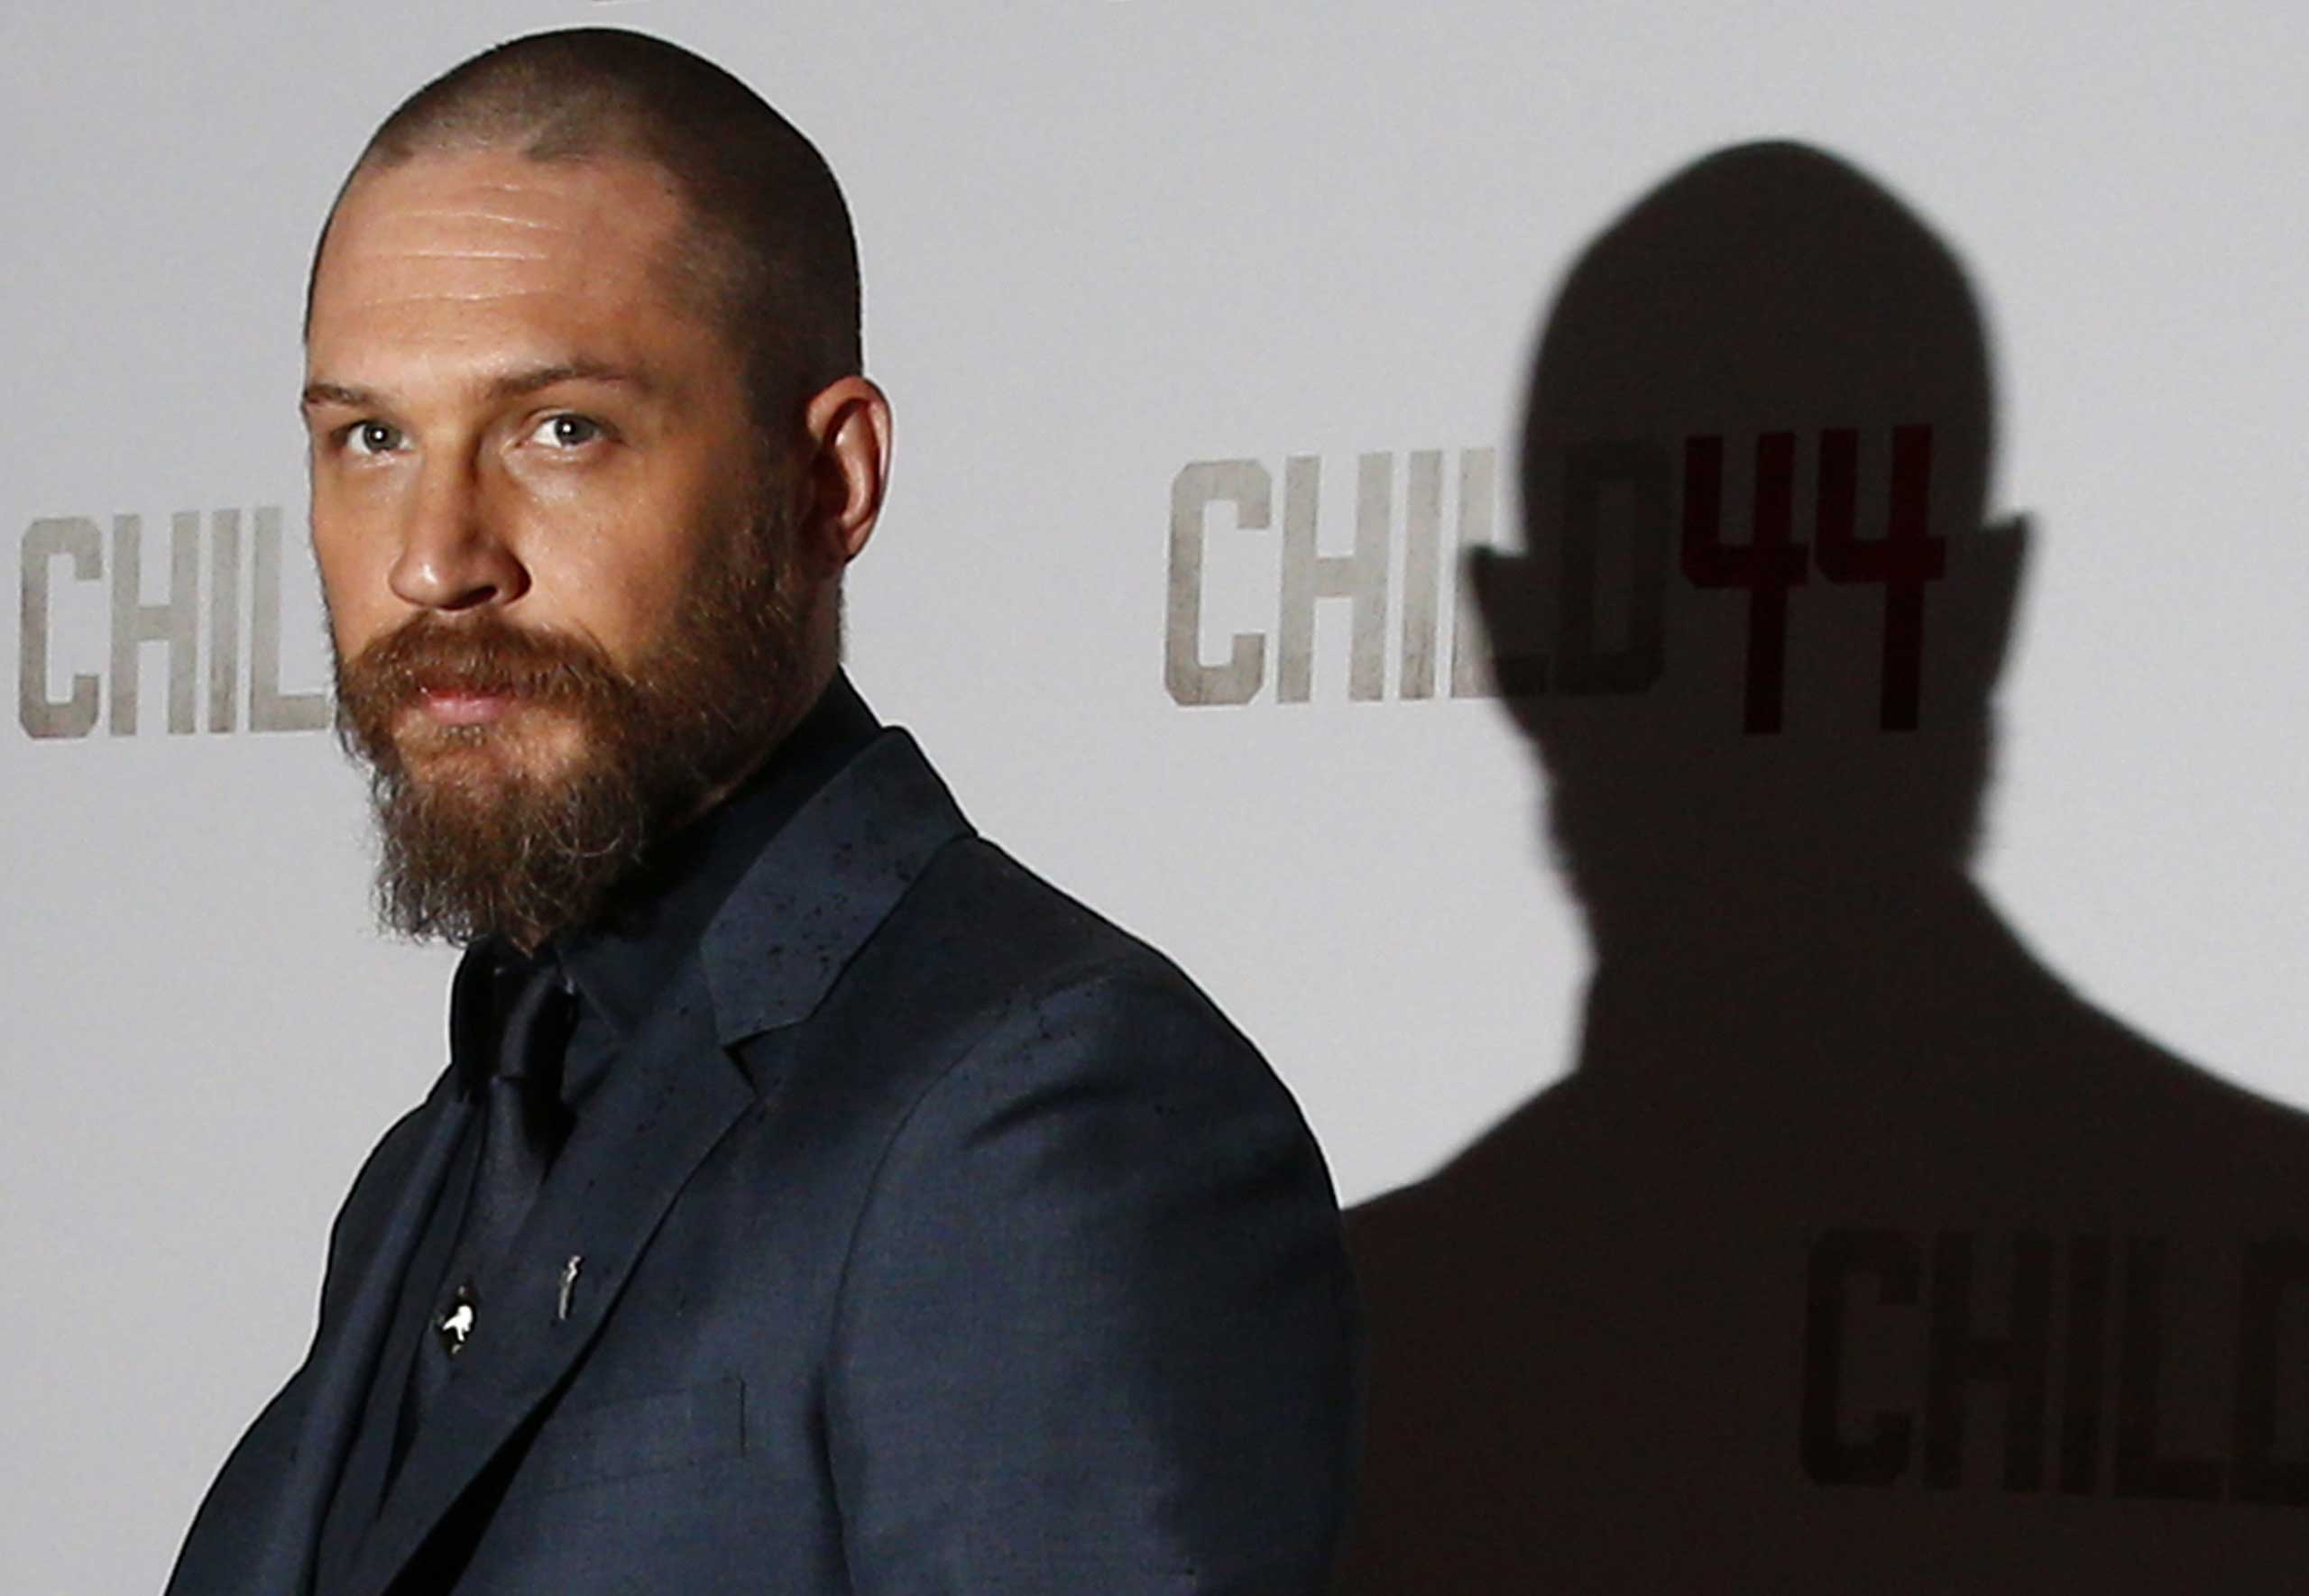 British actor Tom Hardy poses for photographers on the red carpet ahead of the UK premiere of  Child 44  in central London on April 16, 2015.